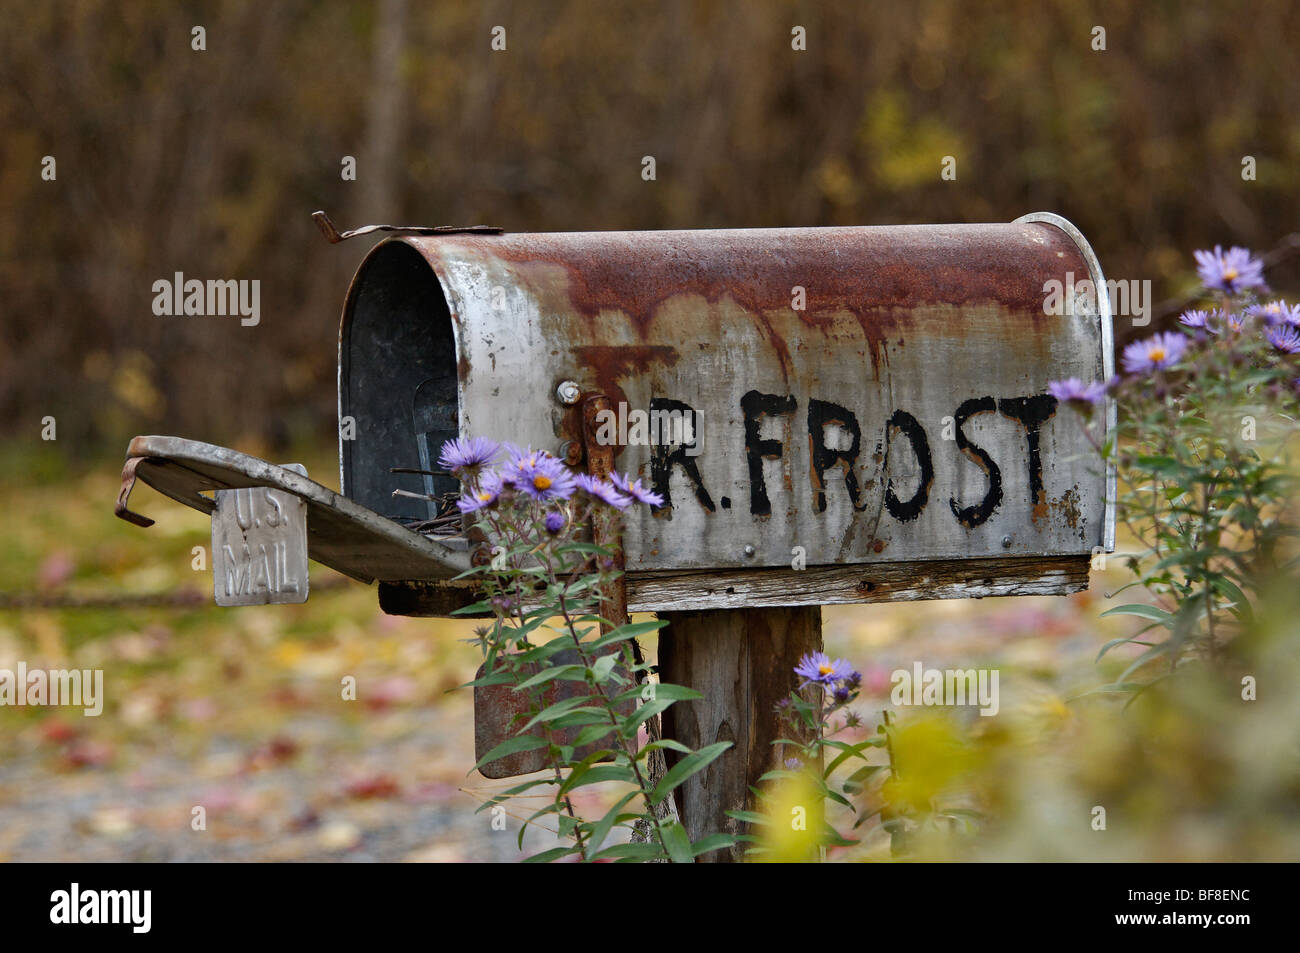 Mailbox at Robert Frost's Home near Franconia, New Hampshire - Stock Image